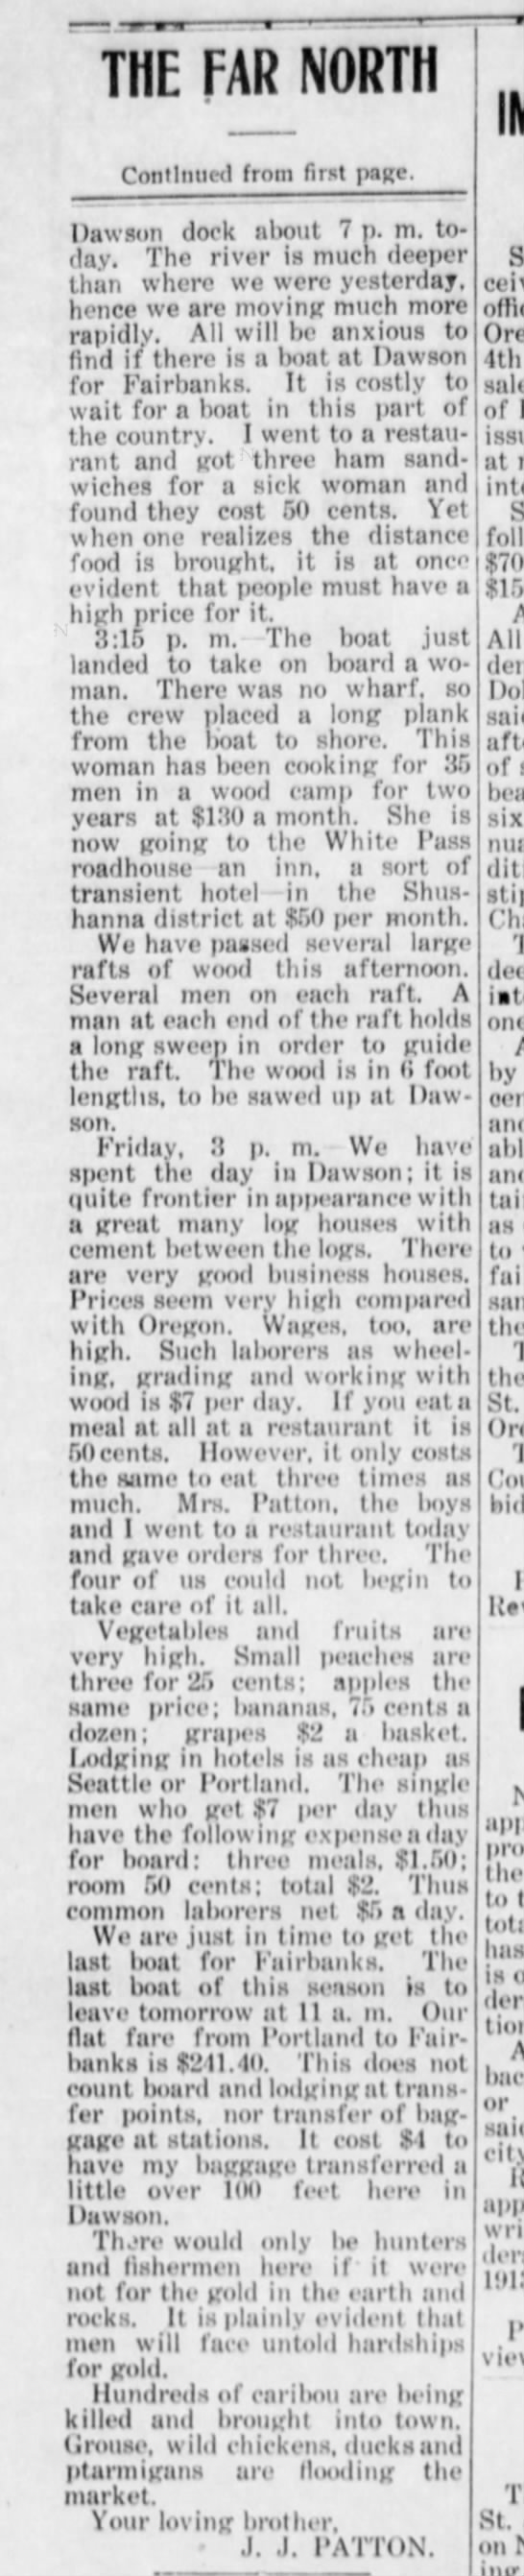 St Johns Review, Portland, OR 24 Oct 1913 page 4 Second part of Rev Patton tells about trip